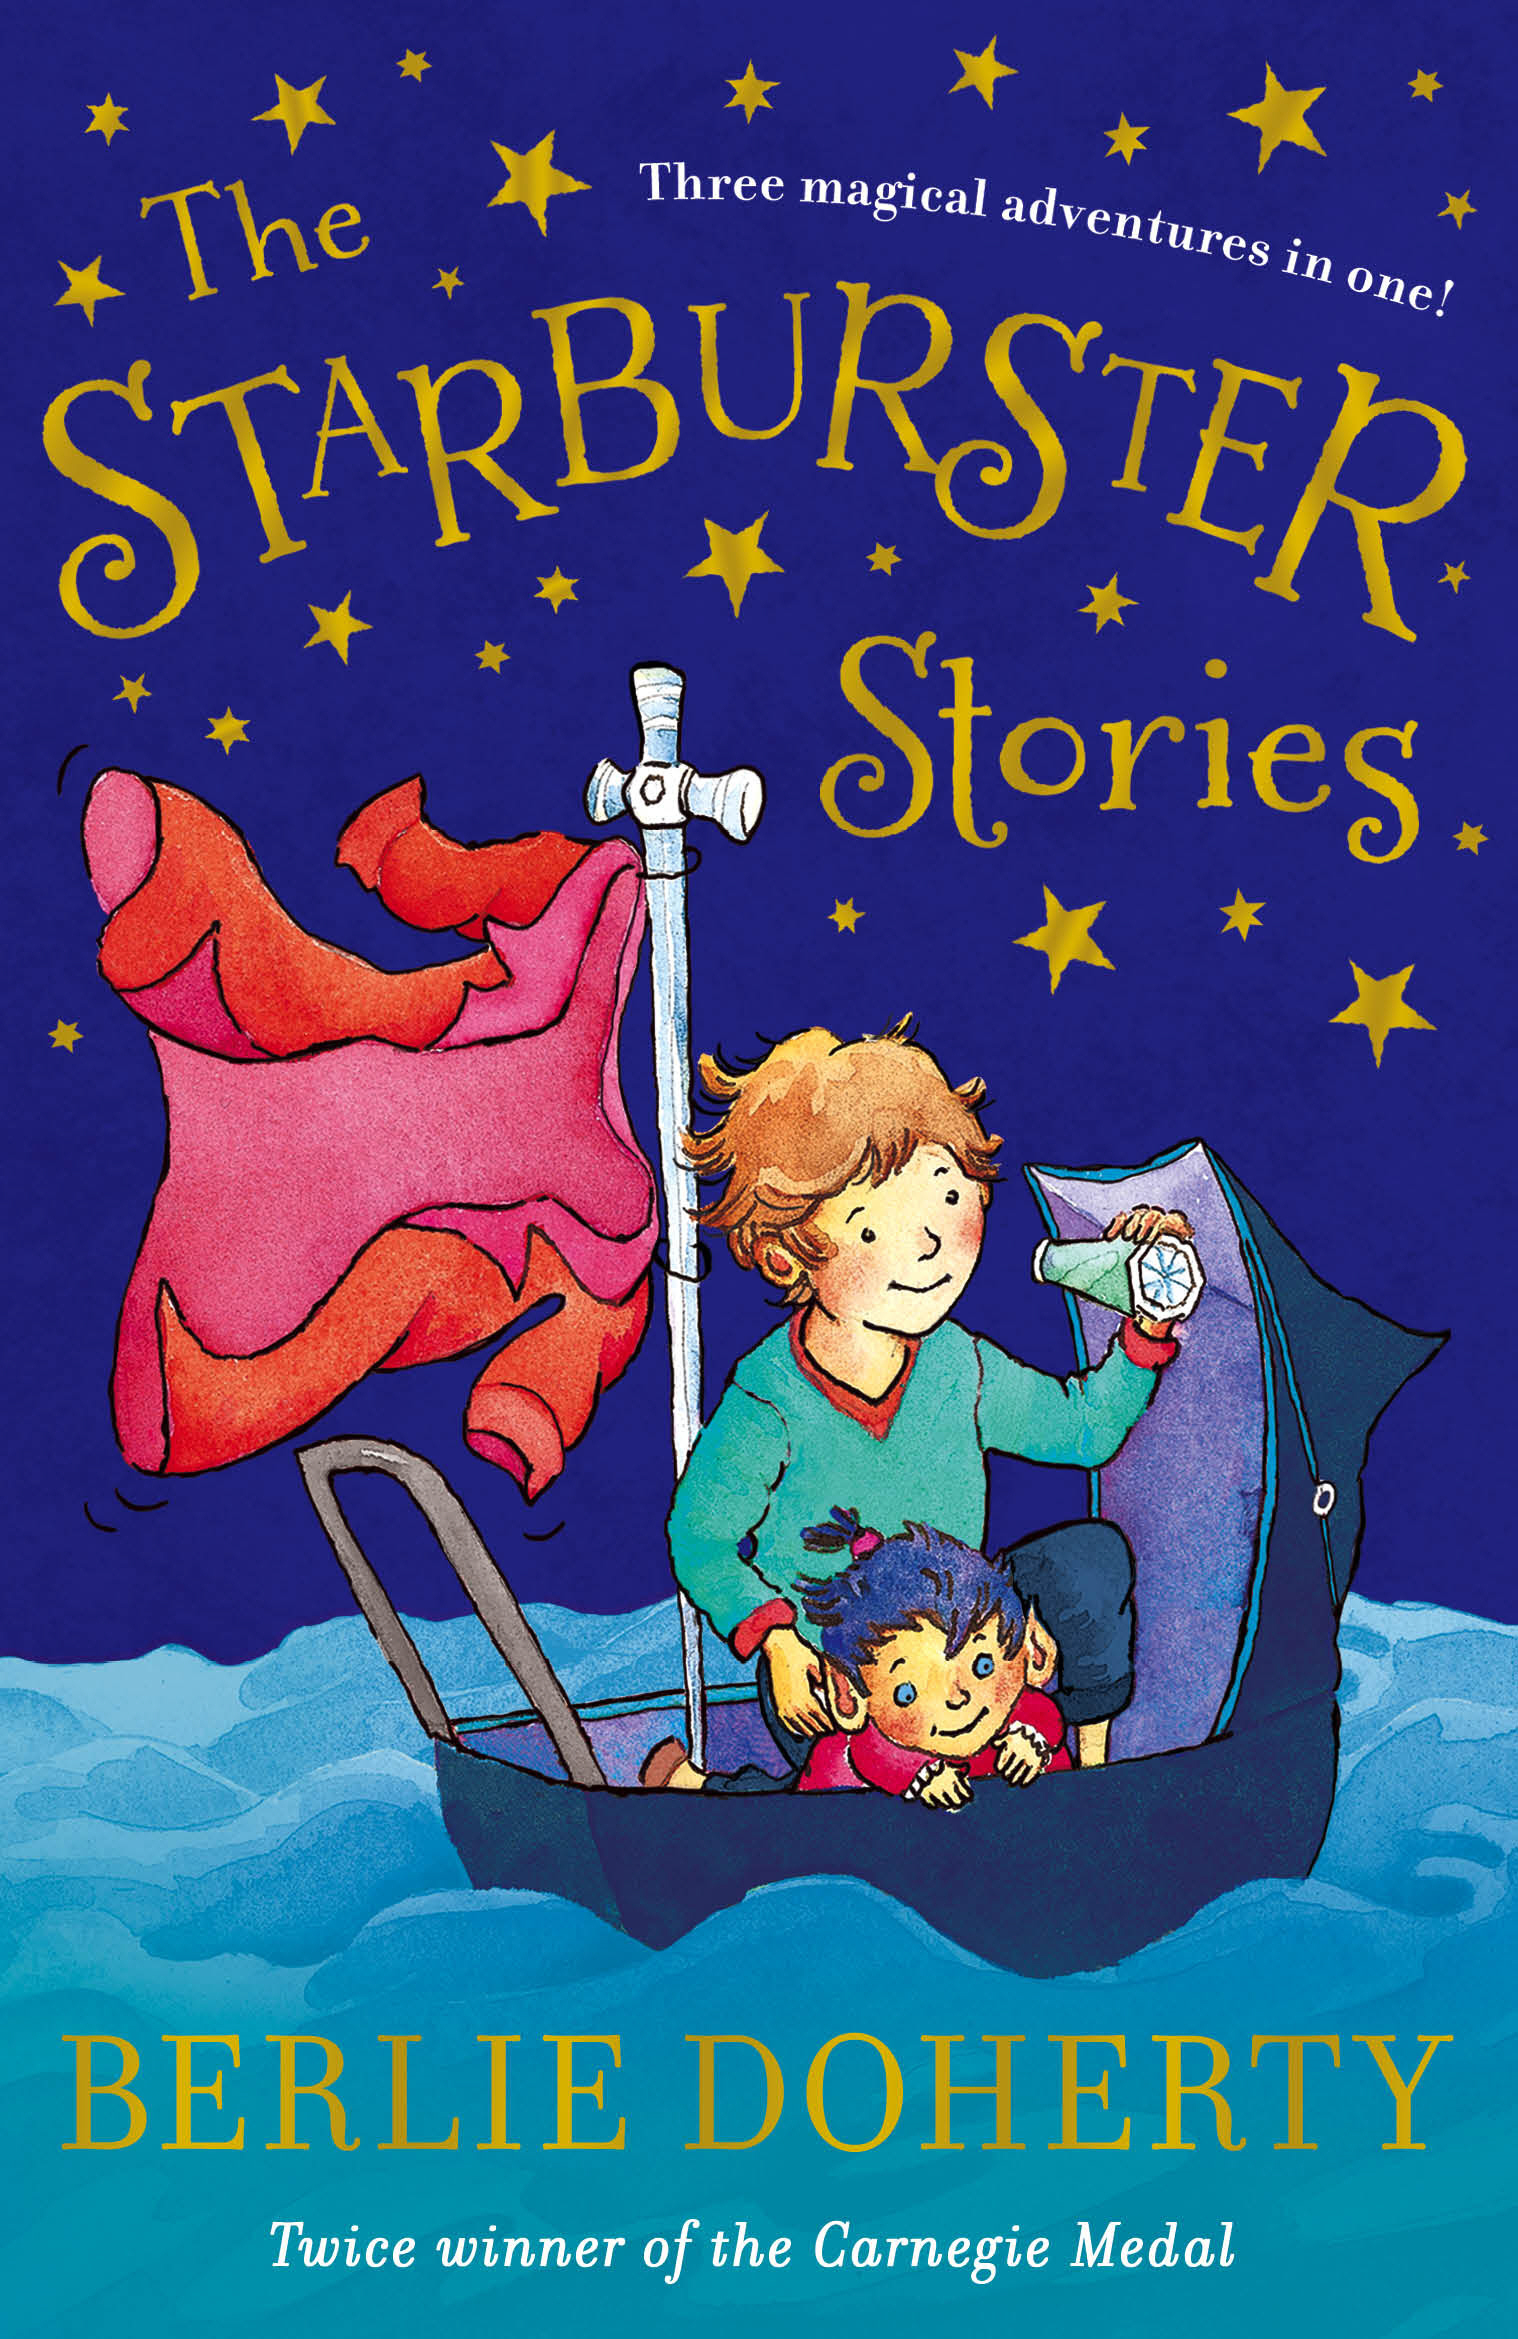 The Starburster Stories